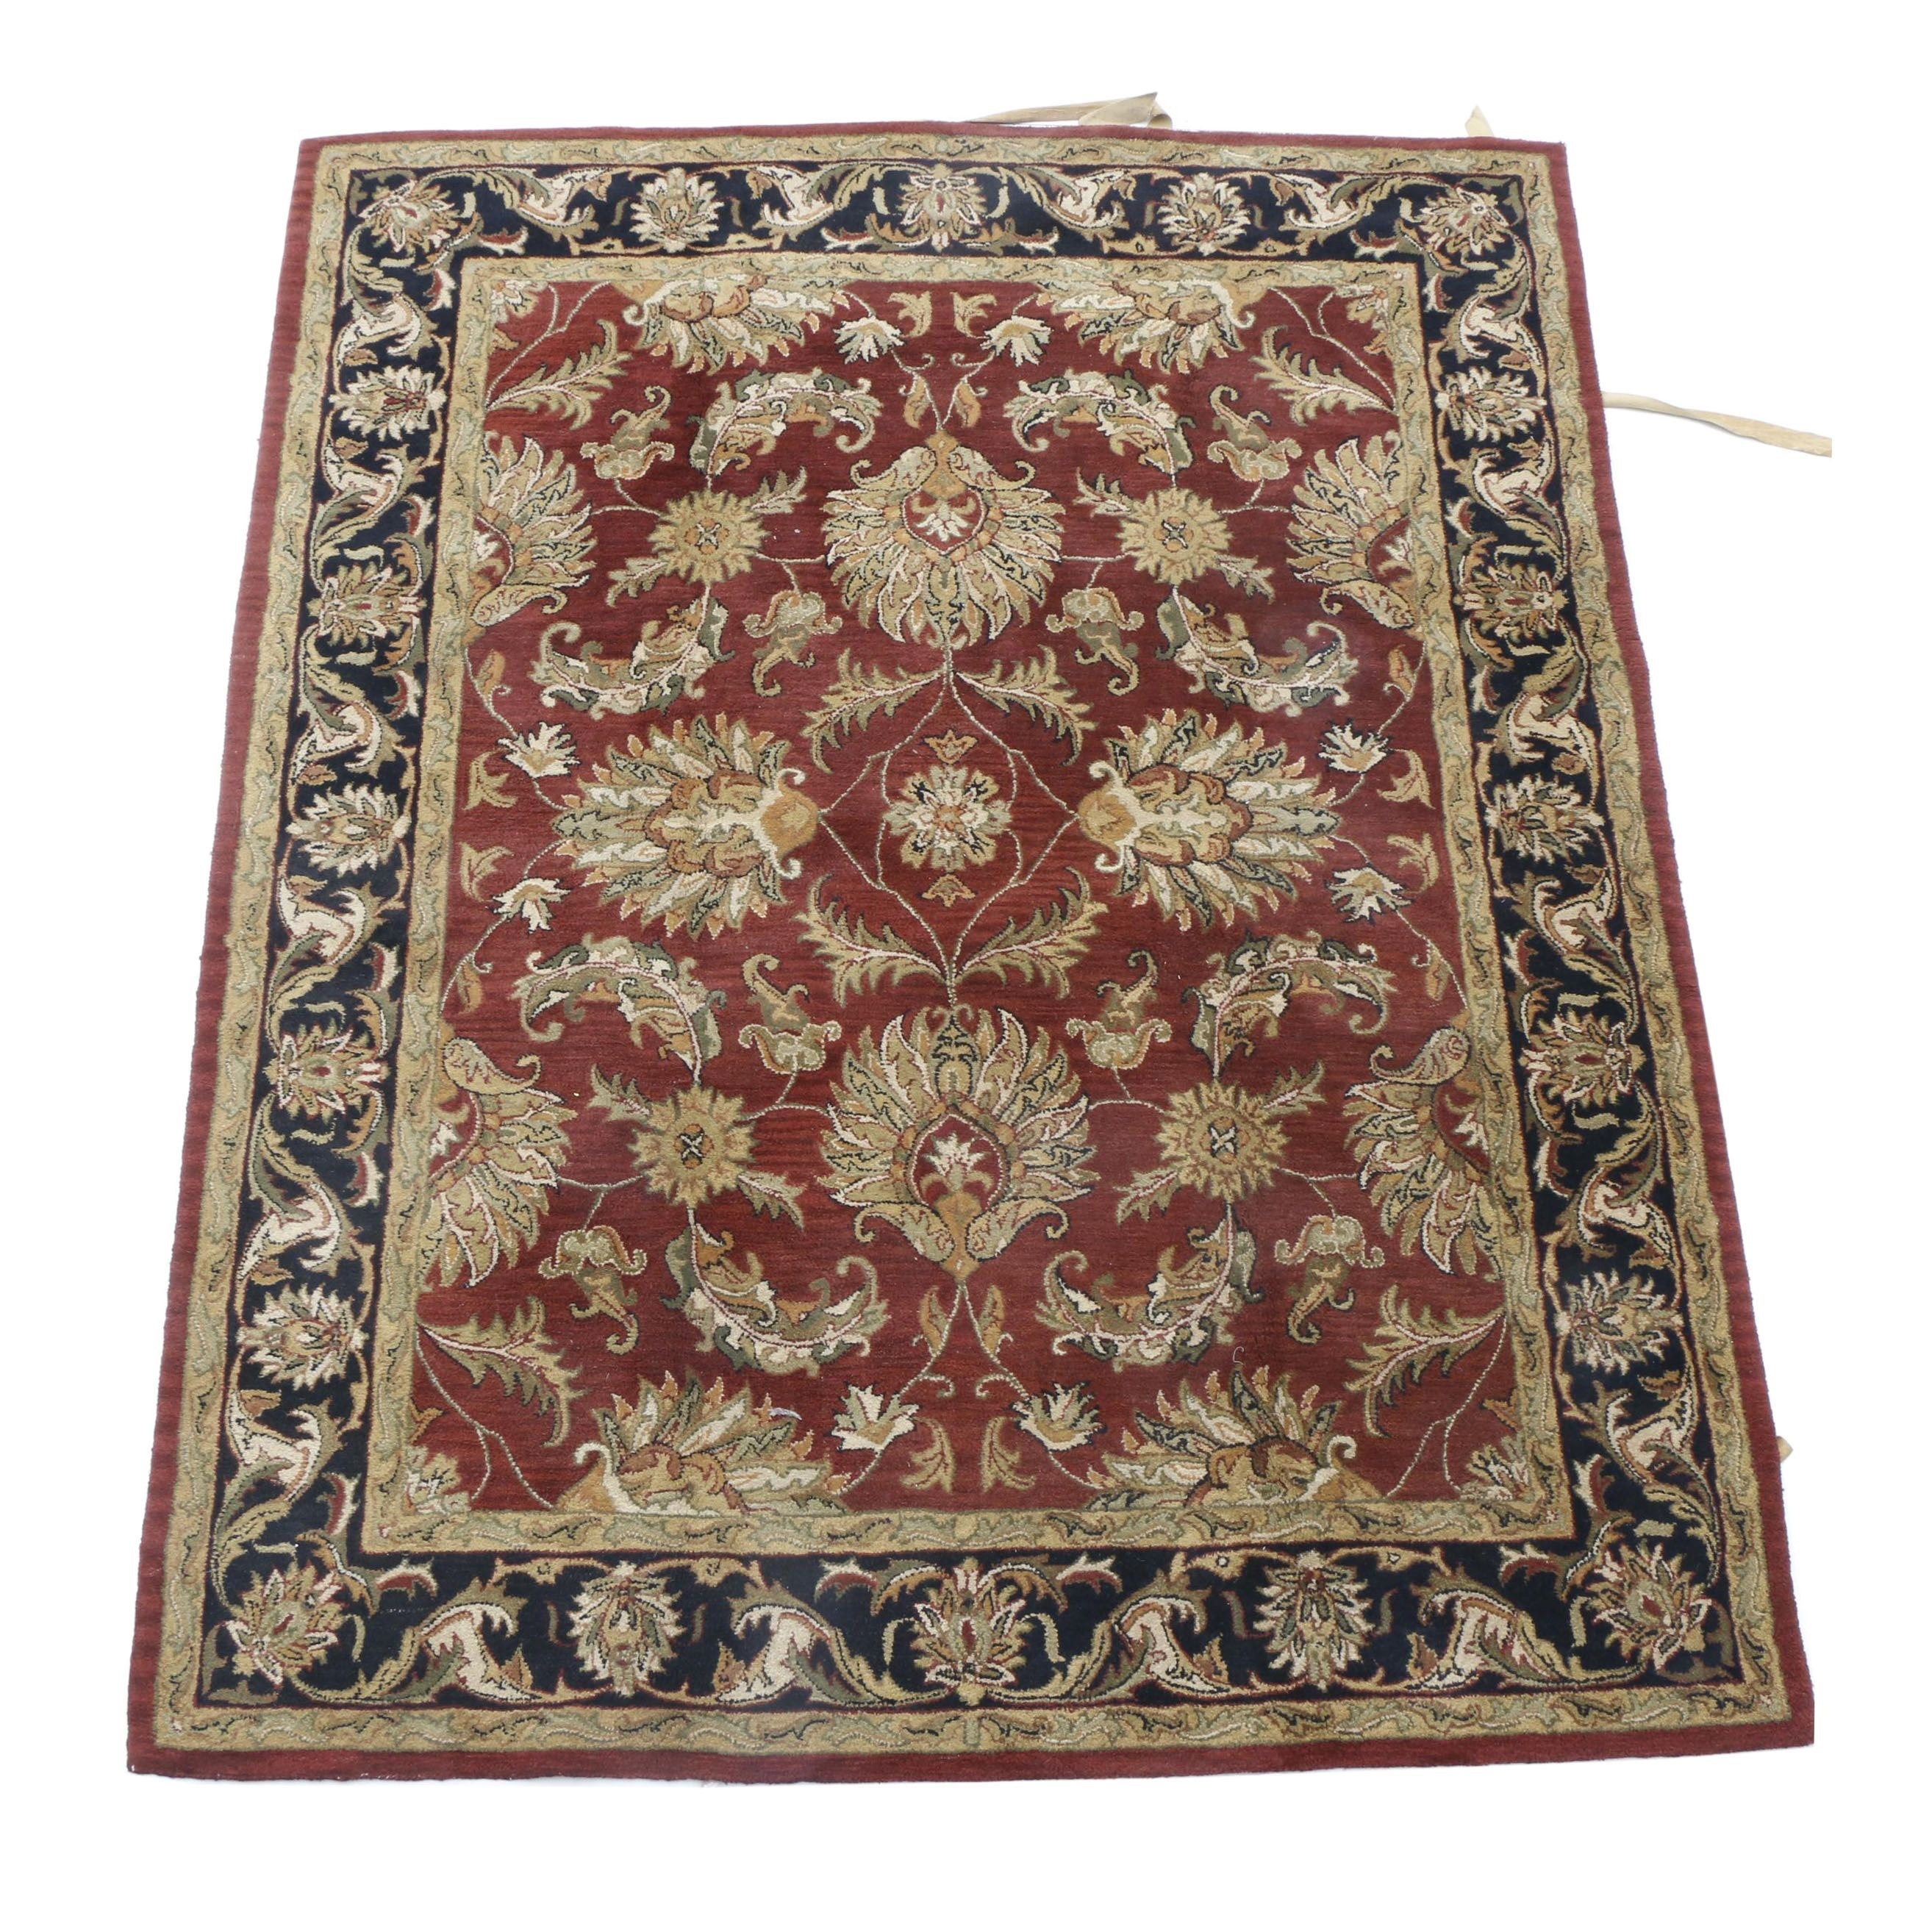 Tufted Indian Agra Style Area Rug